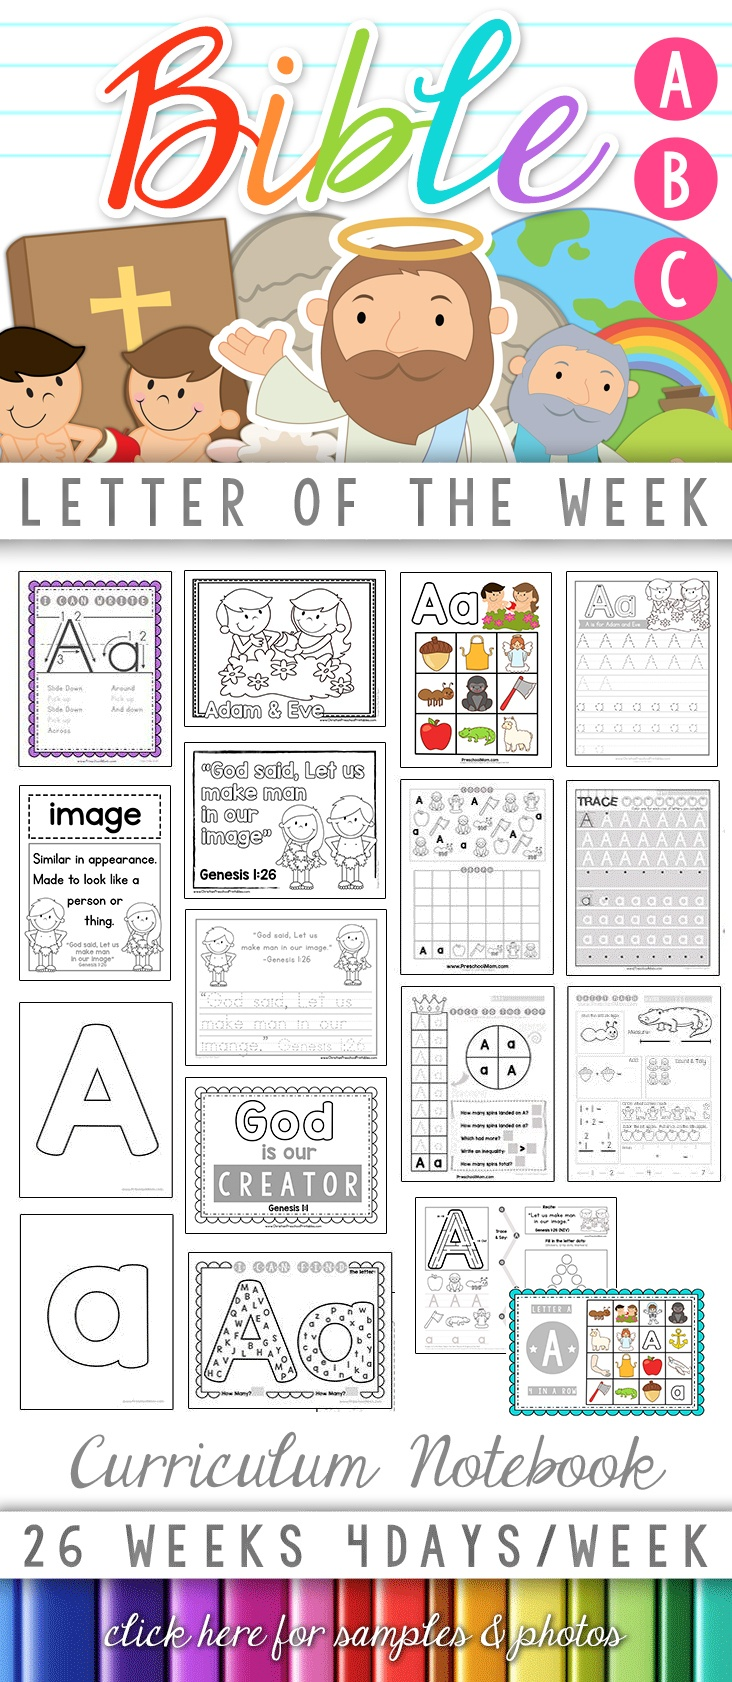 Bible Abc Printables - Christian Preschool Printables - Free Printable Bible Stories For Youth